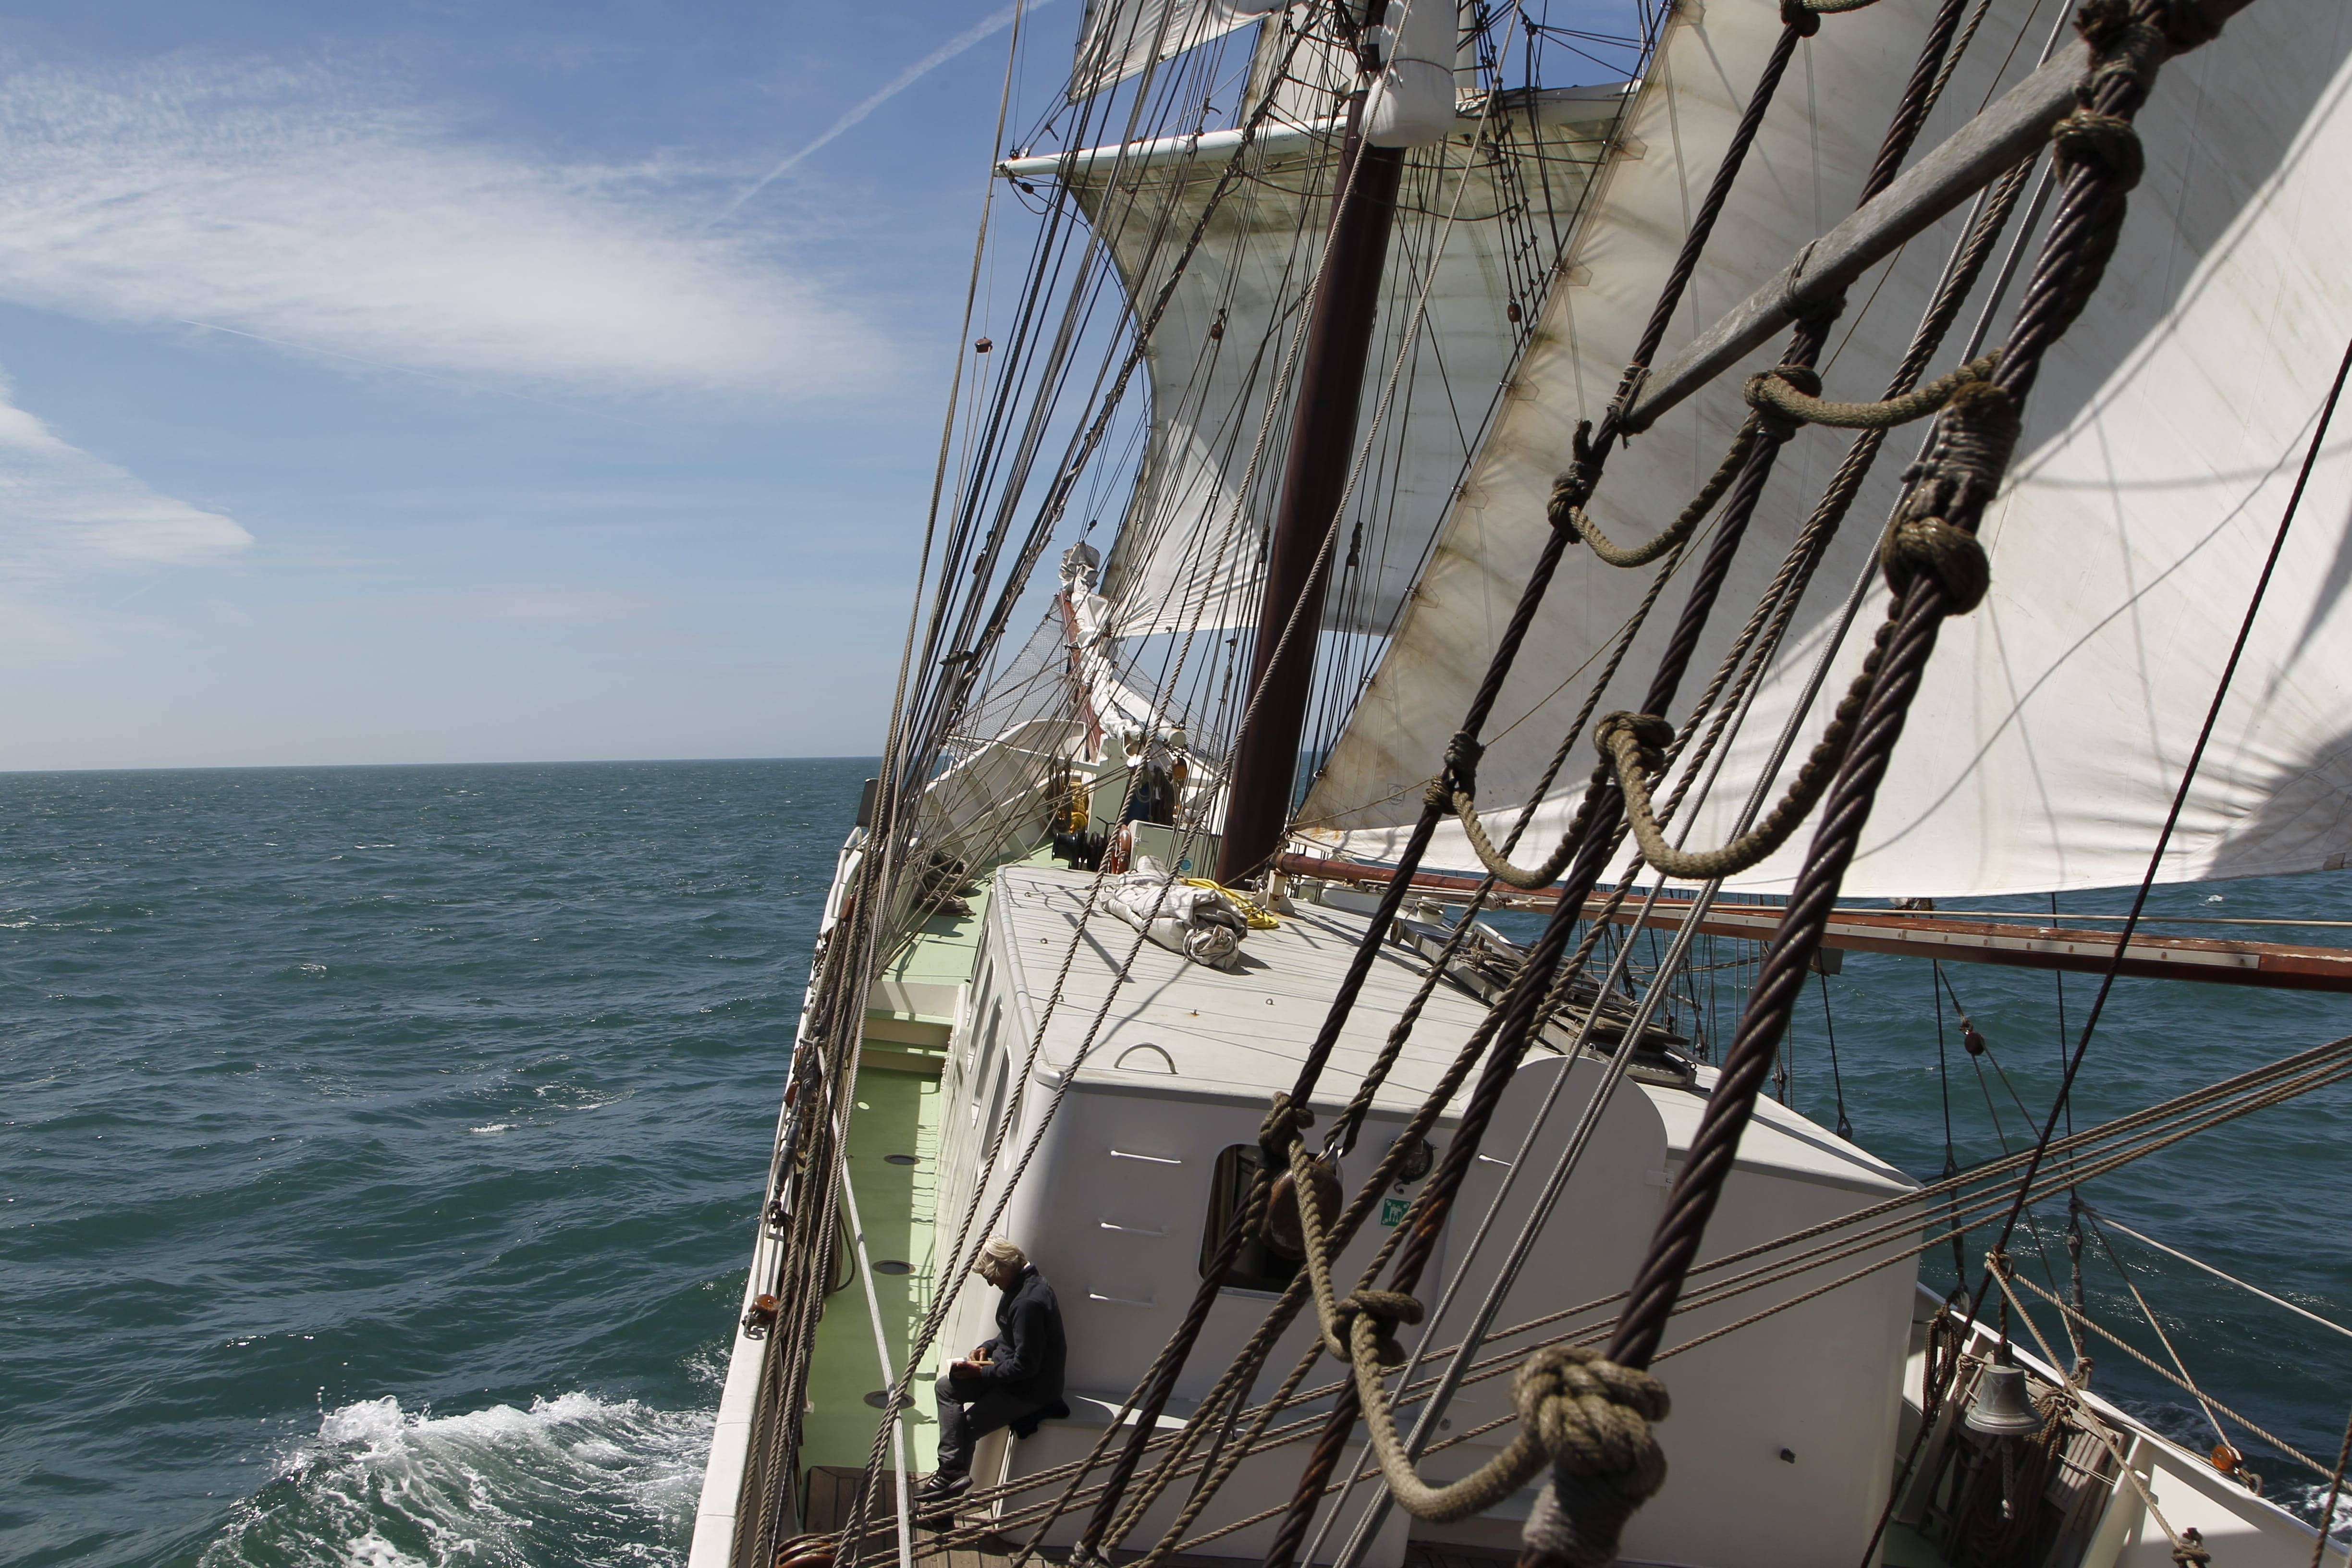 Artemis sails clause hauled